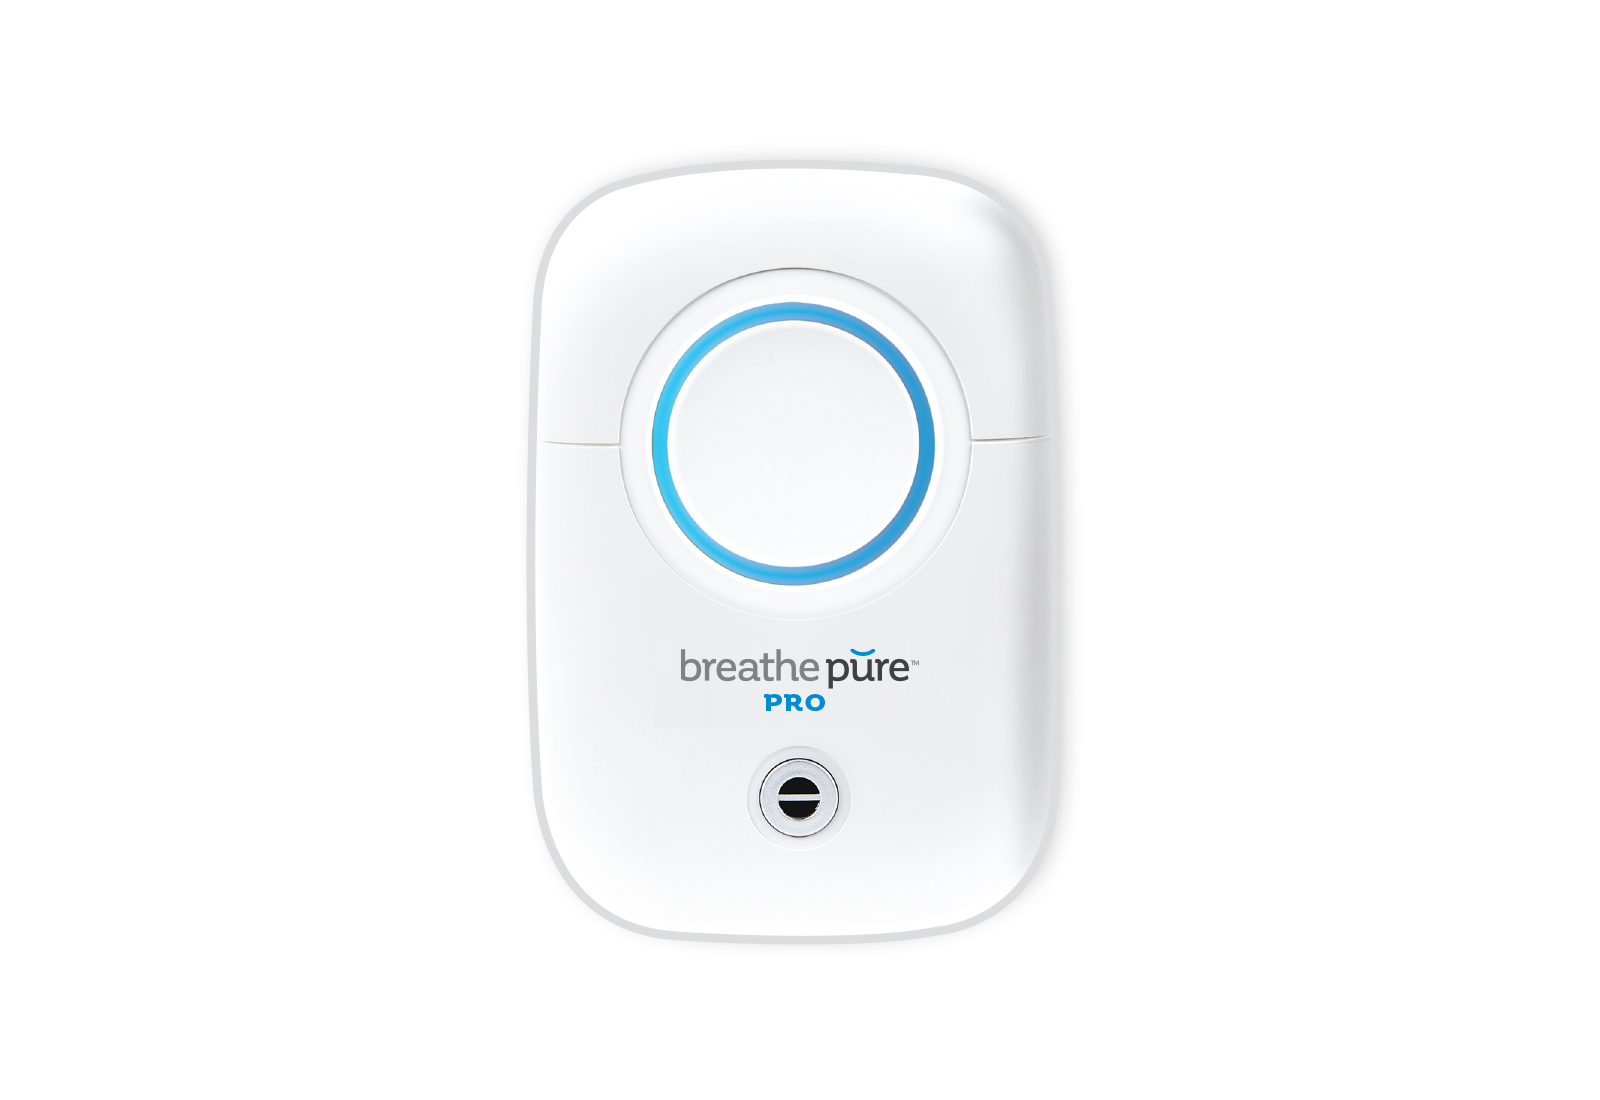 Breath Pure Pro Product Image